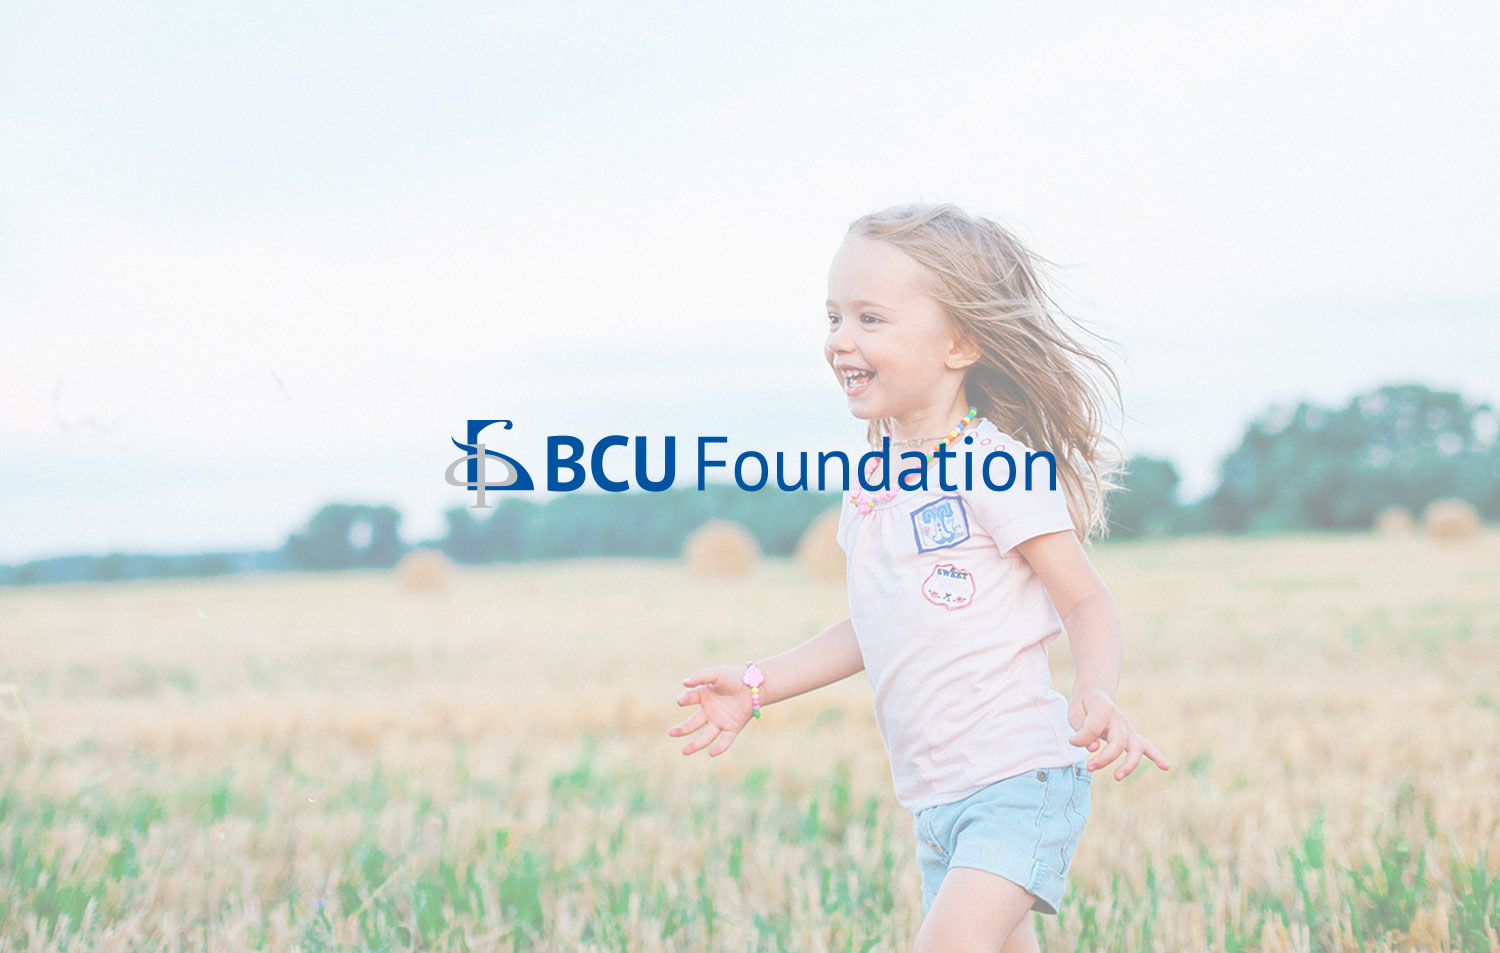 BCU Foundation